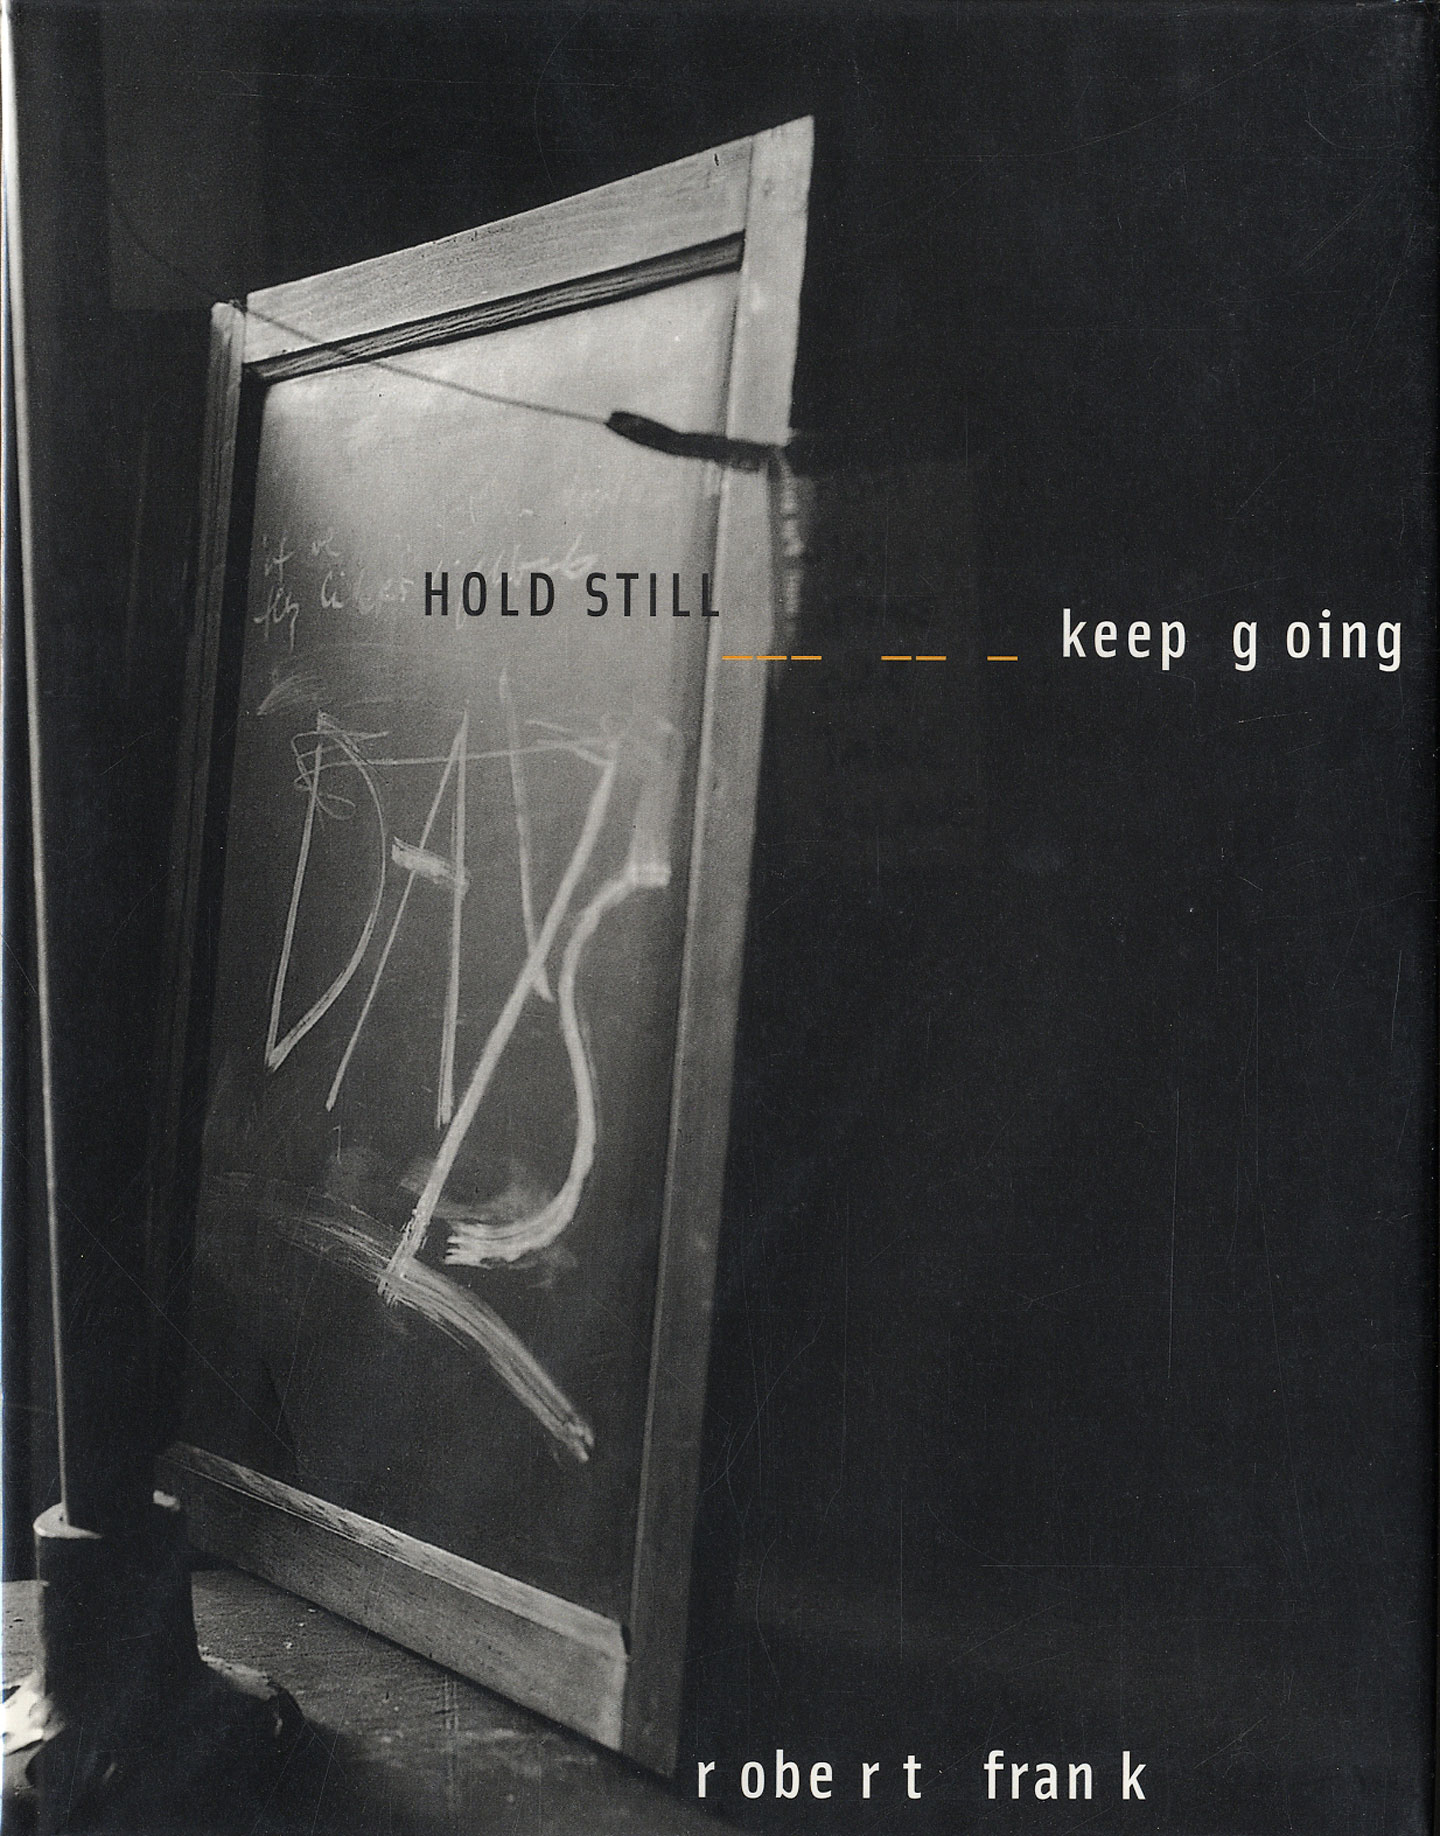 Robert Frank: Hold Still, Keep Going (First Edition)